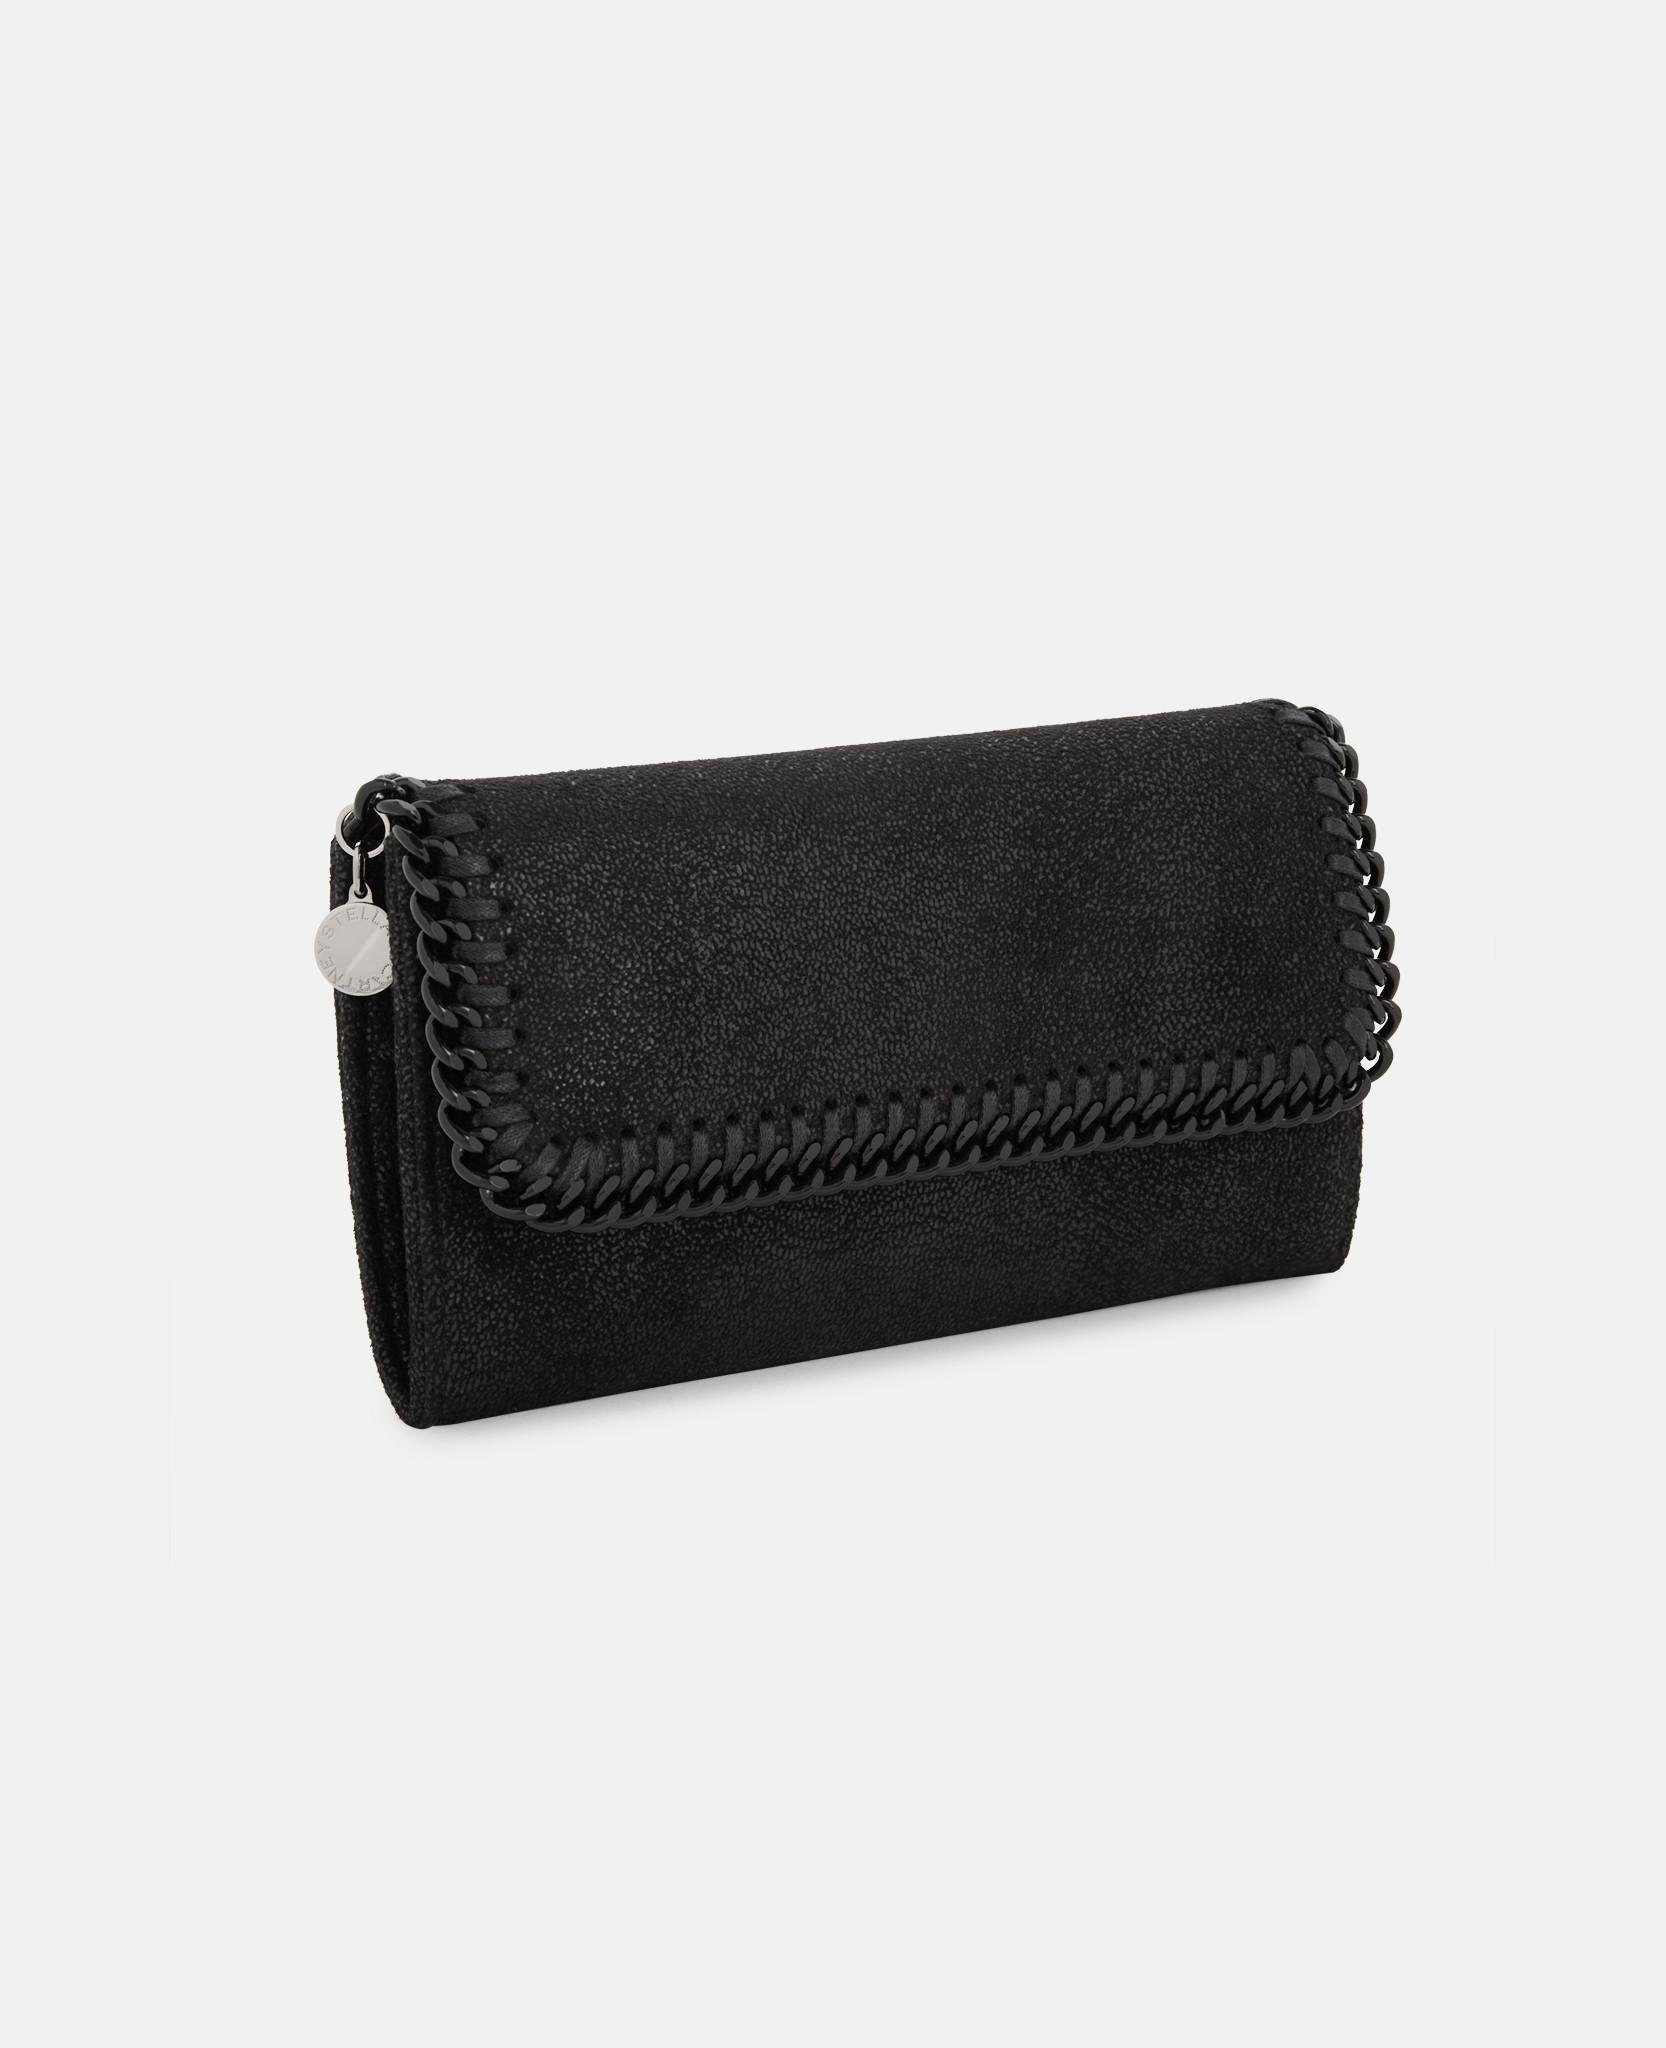 a83220e6a710 Lyst - Stella Mccartney Falabella Continental Wallet in Black